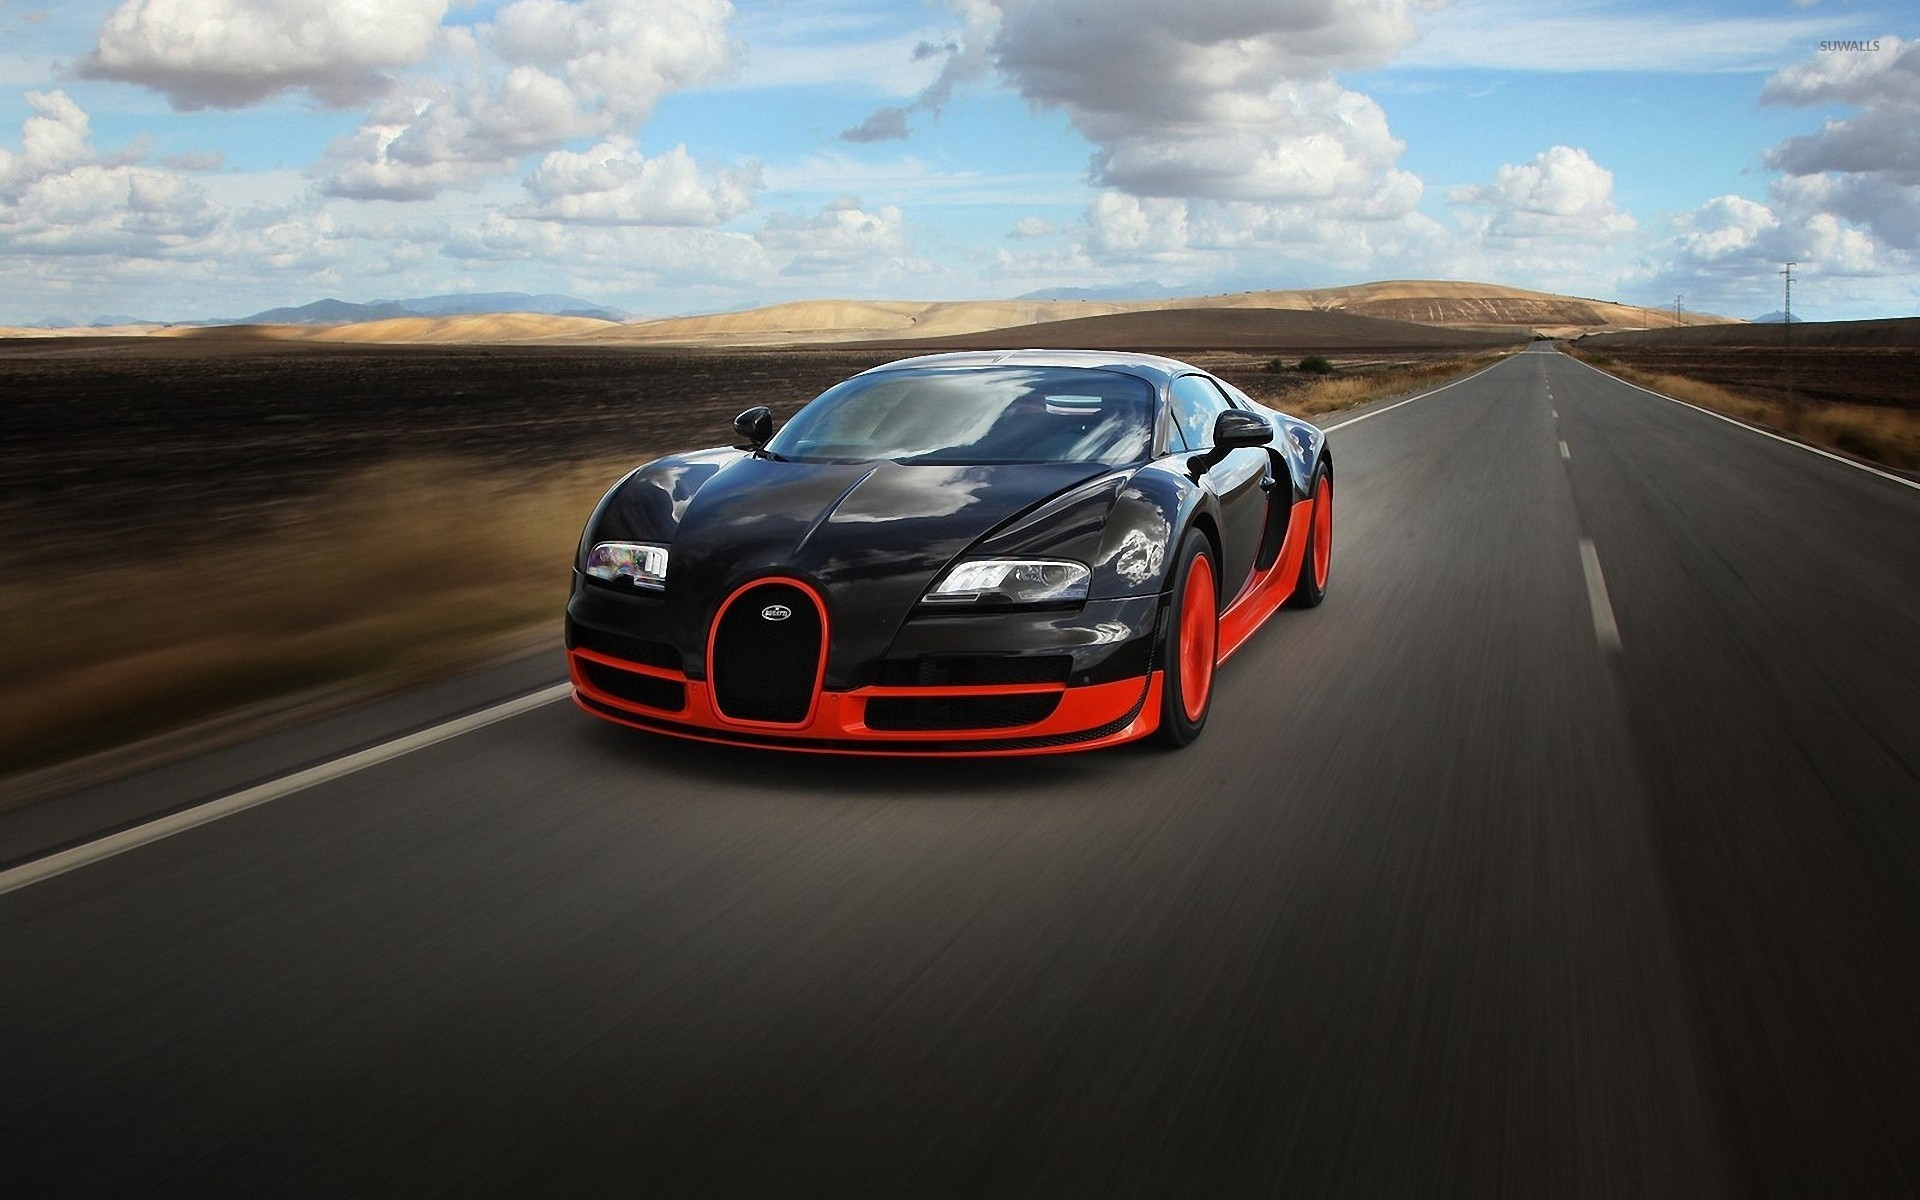 Bugatti Veyron EB 164 [7] wallpaper   Car wallpapers   7772 1920x1200